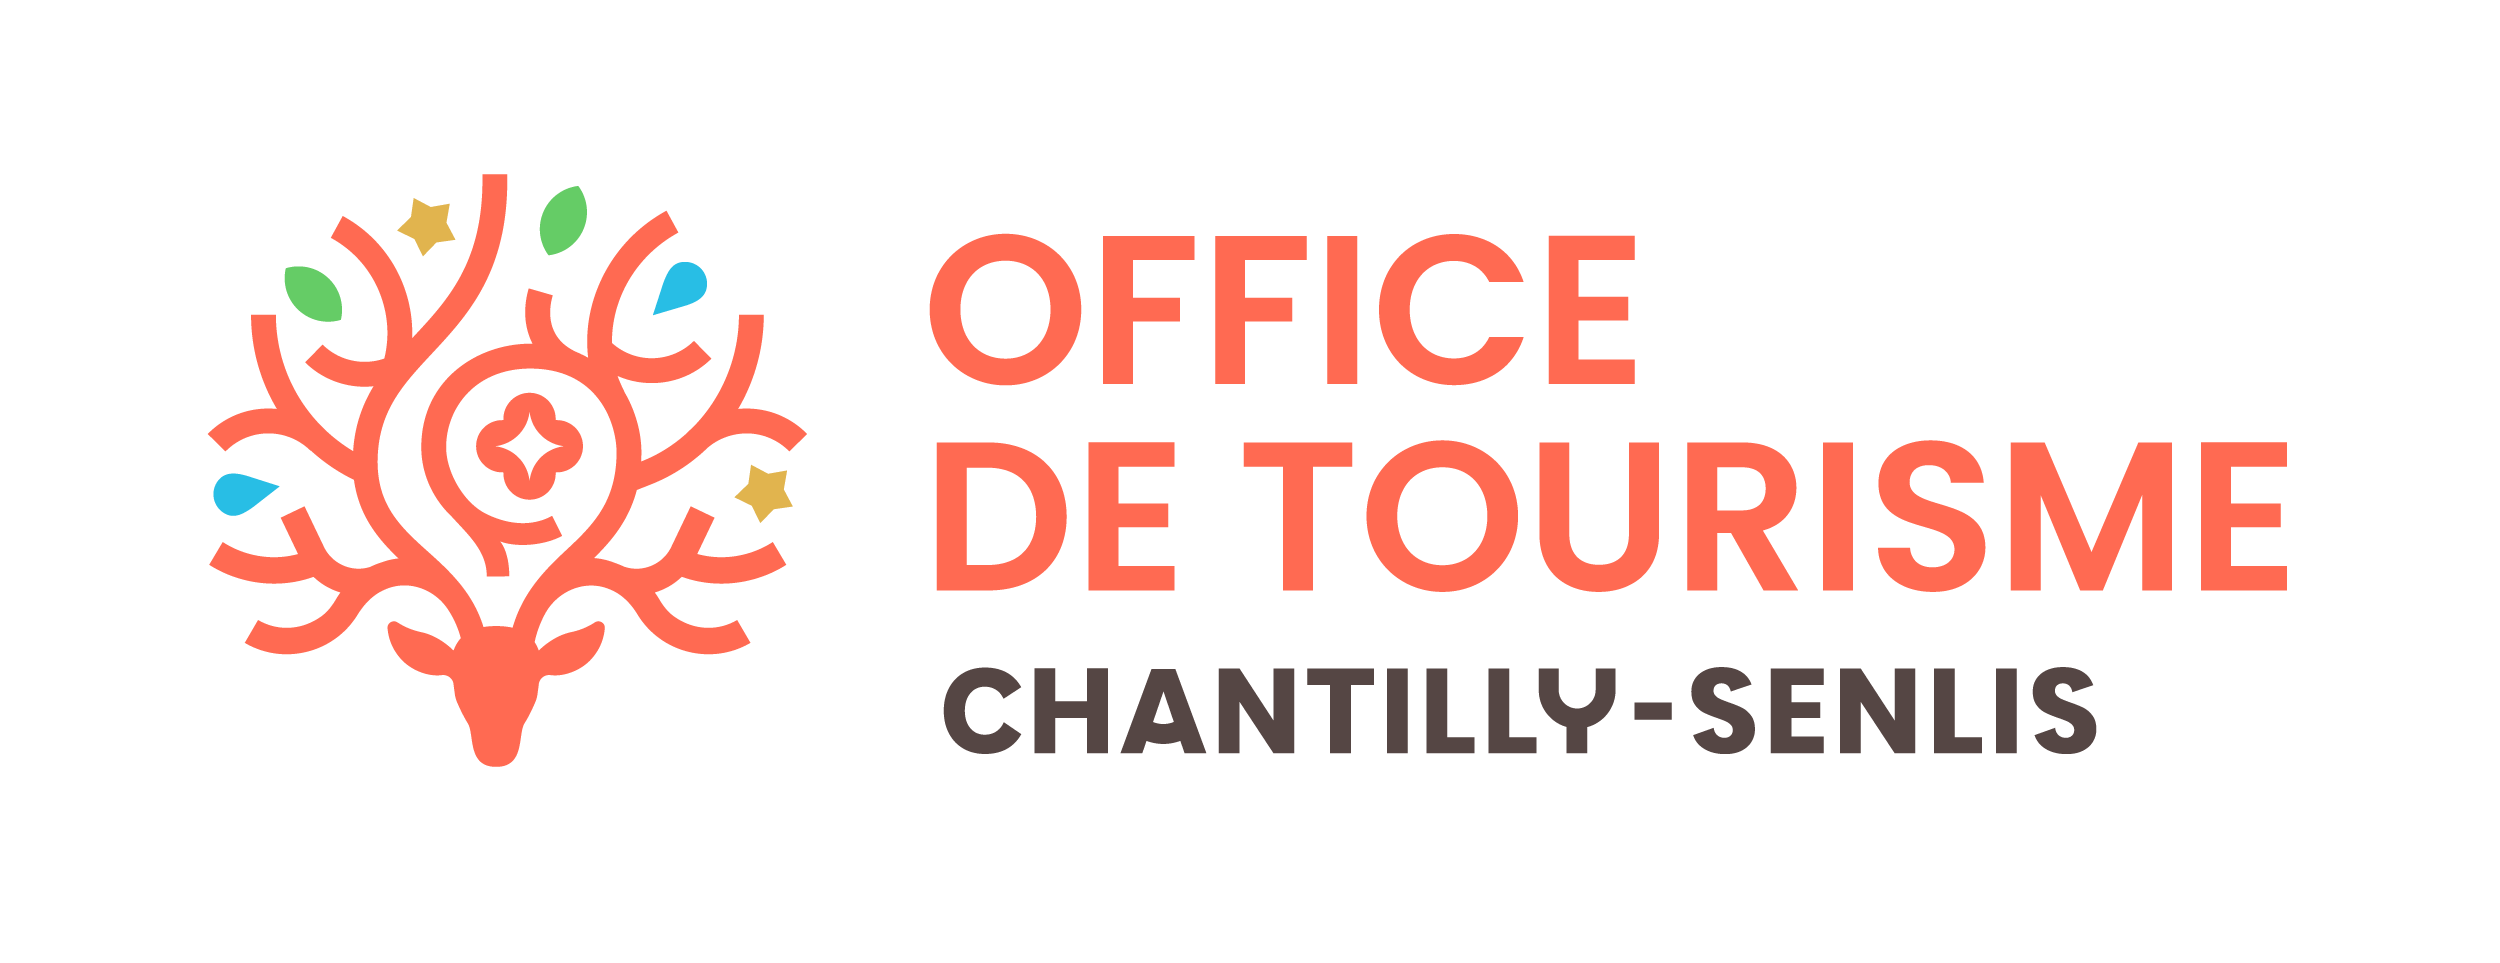 CHANTILLY-SENLIS_logo_OT_RVB